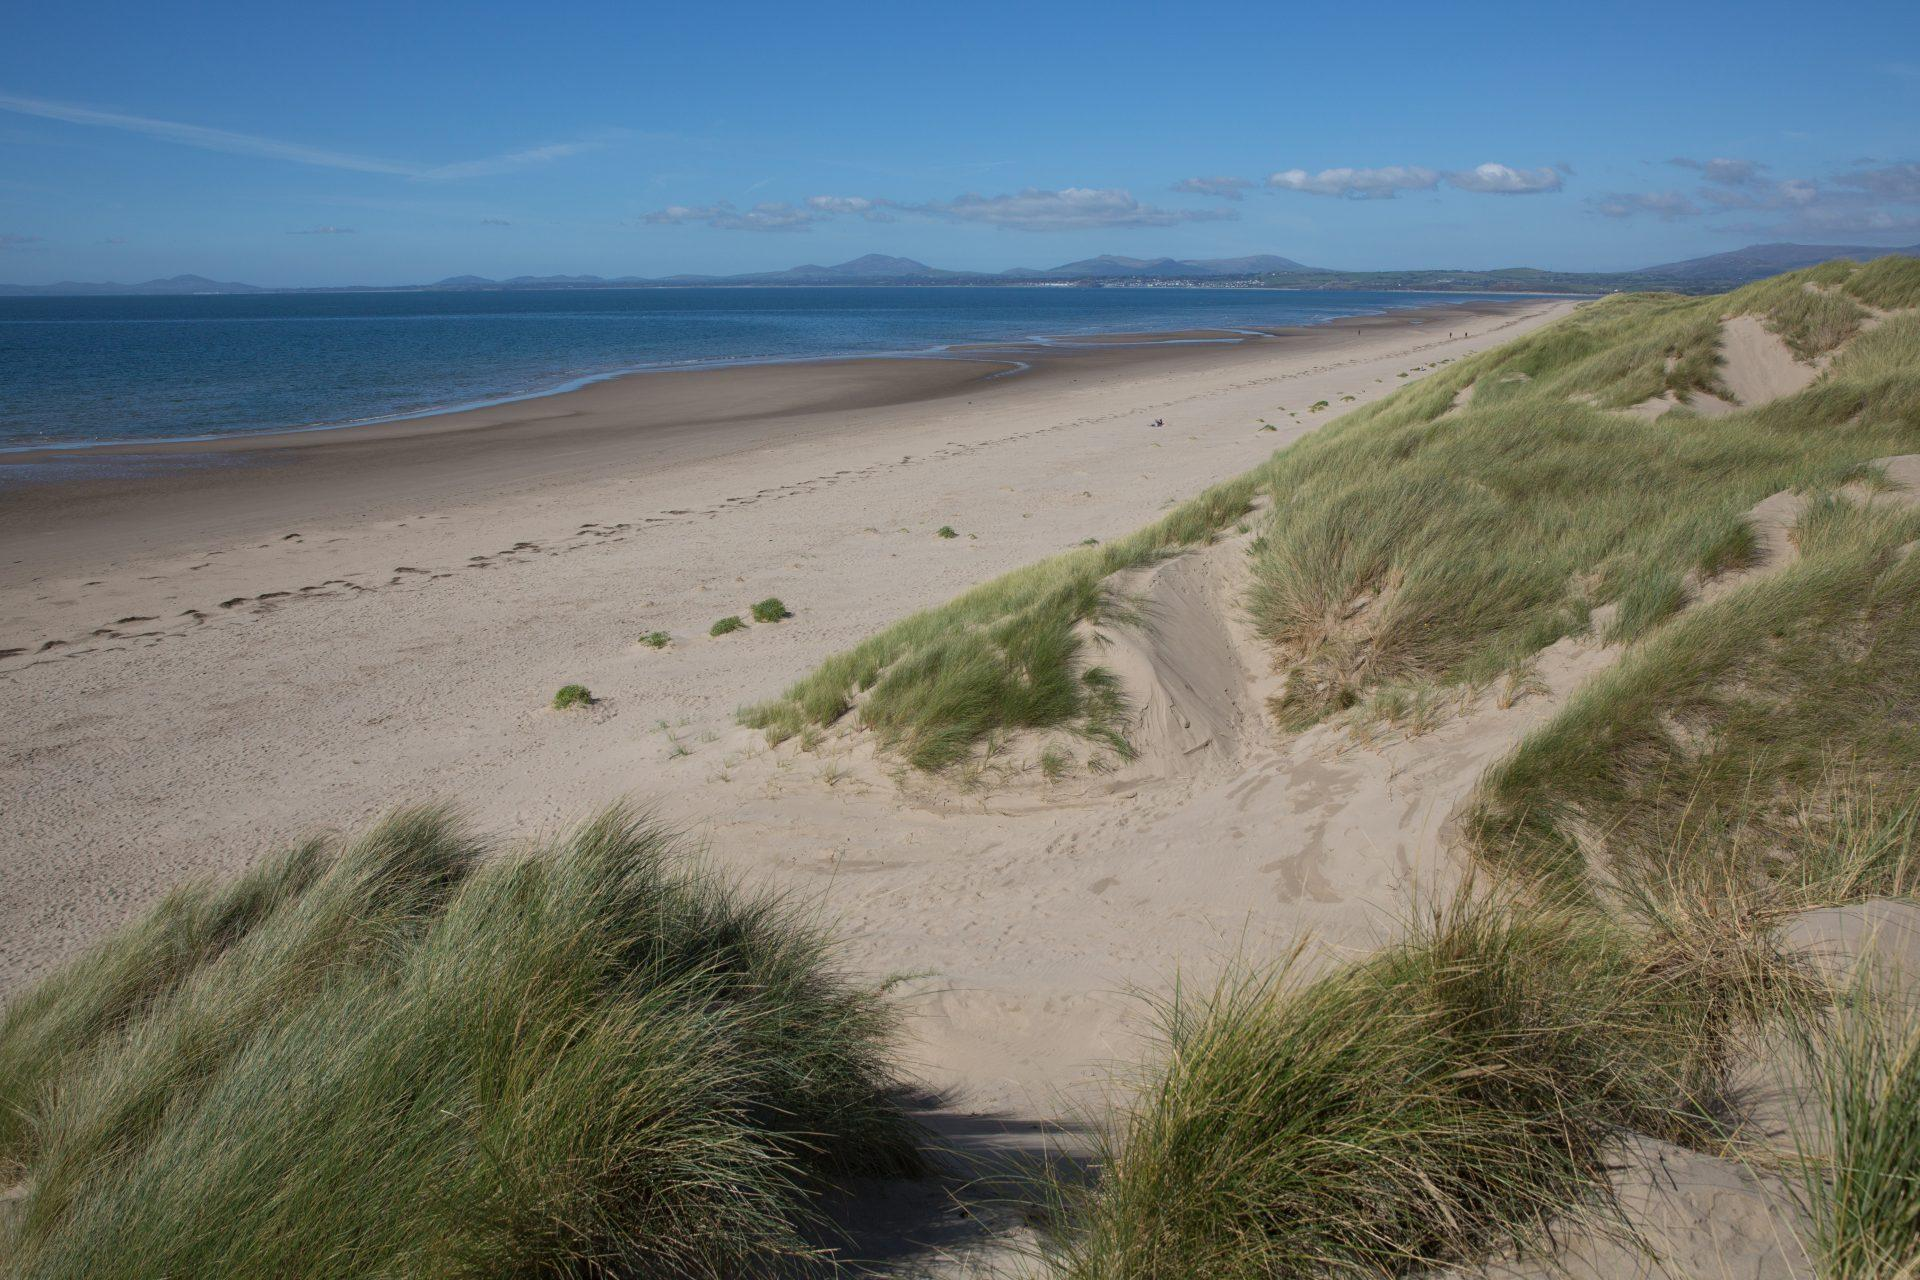 Harlech beach north west Wales UK by the castle